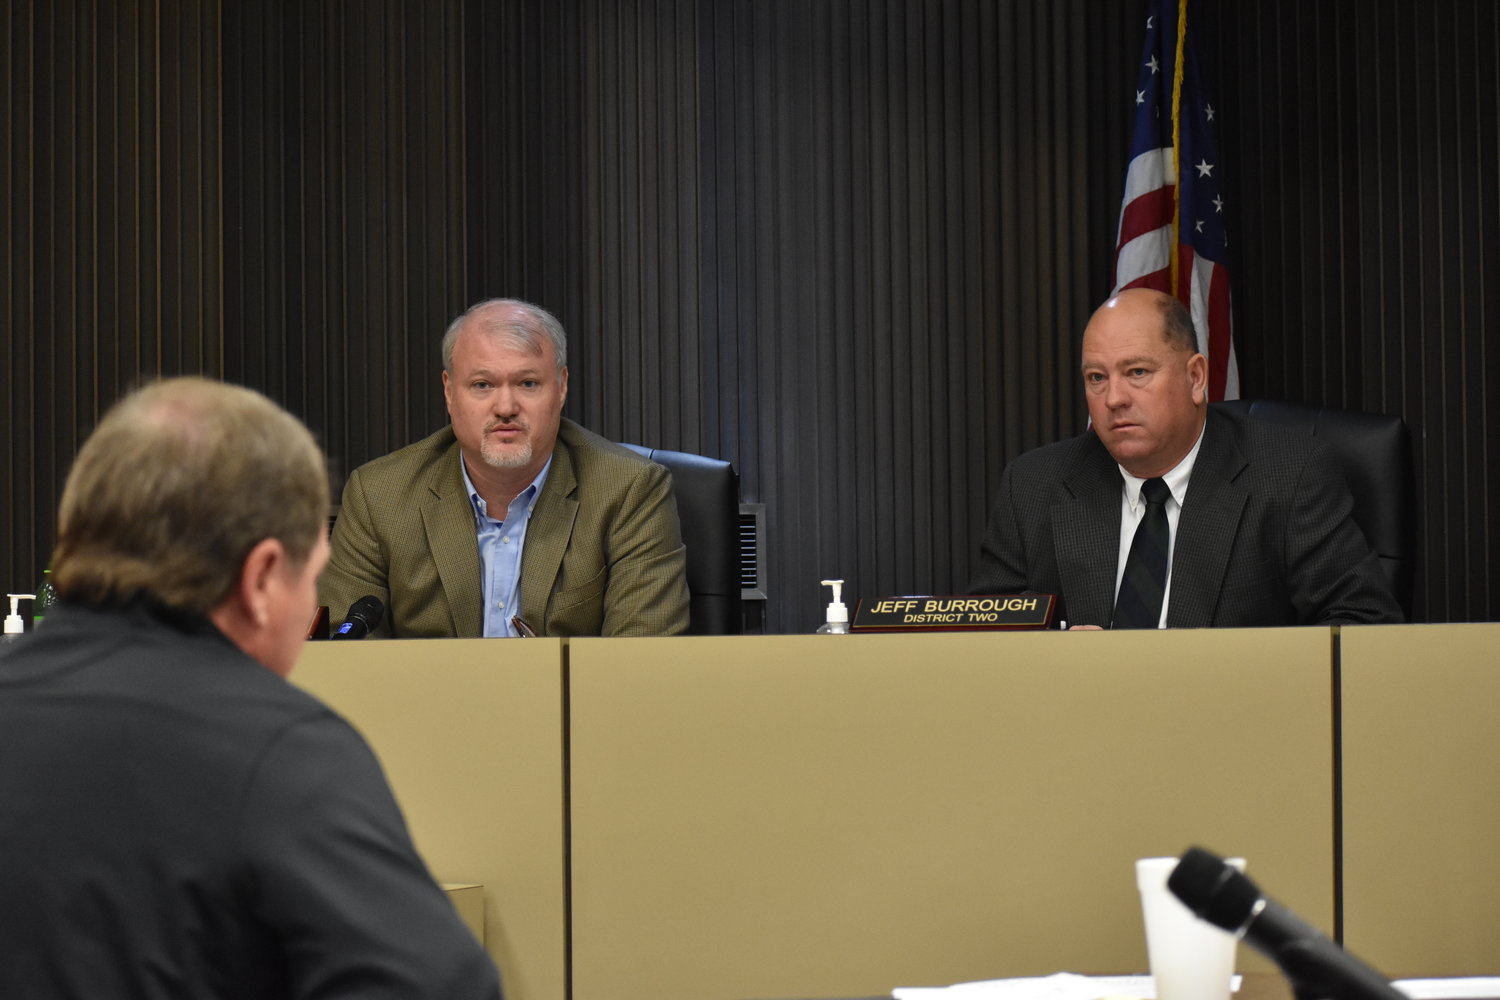 Commissioners Keith Davis, left, talks to County Engineer Mike Short, while Commissioner Jeff Burrough listens, during Monday's Walker County Commission meeting.